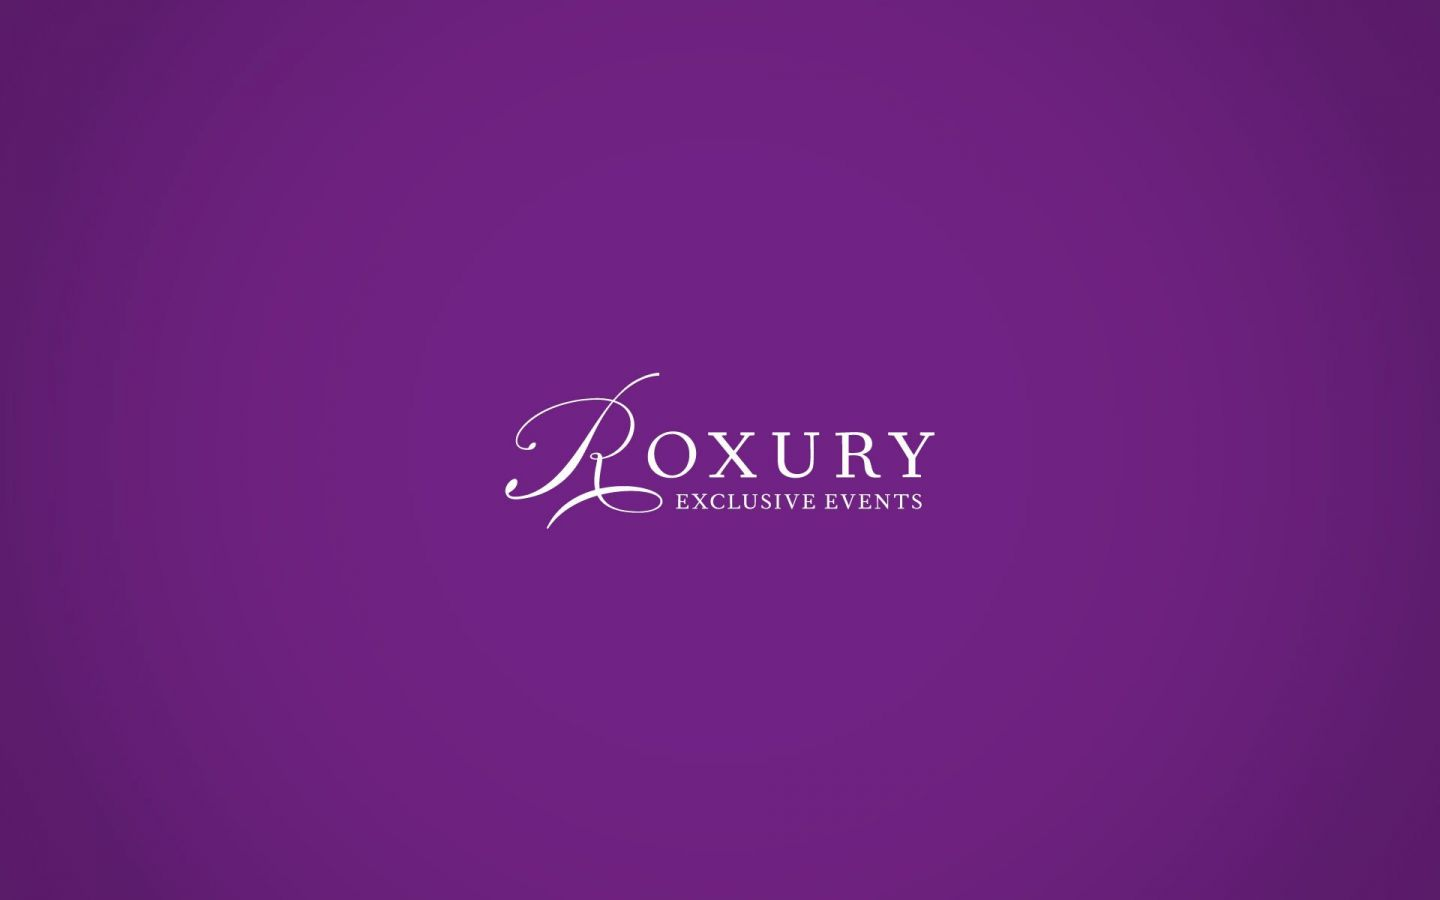 Roxury Exclusive Events Branding Project by Crevisio